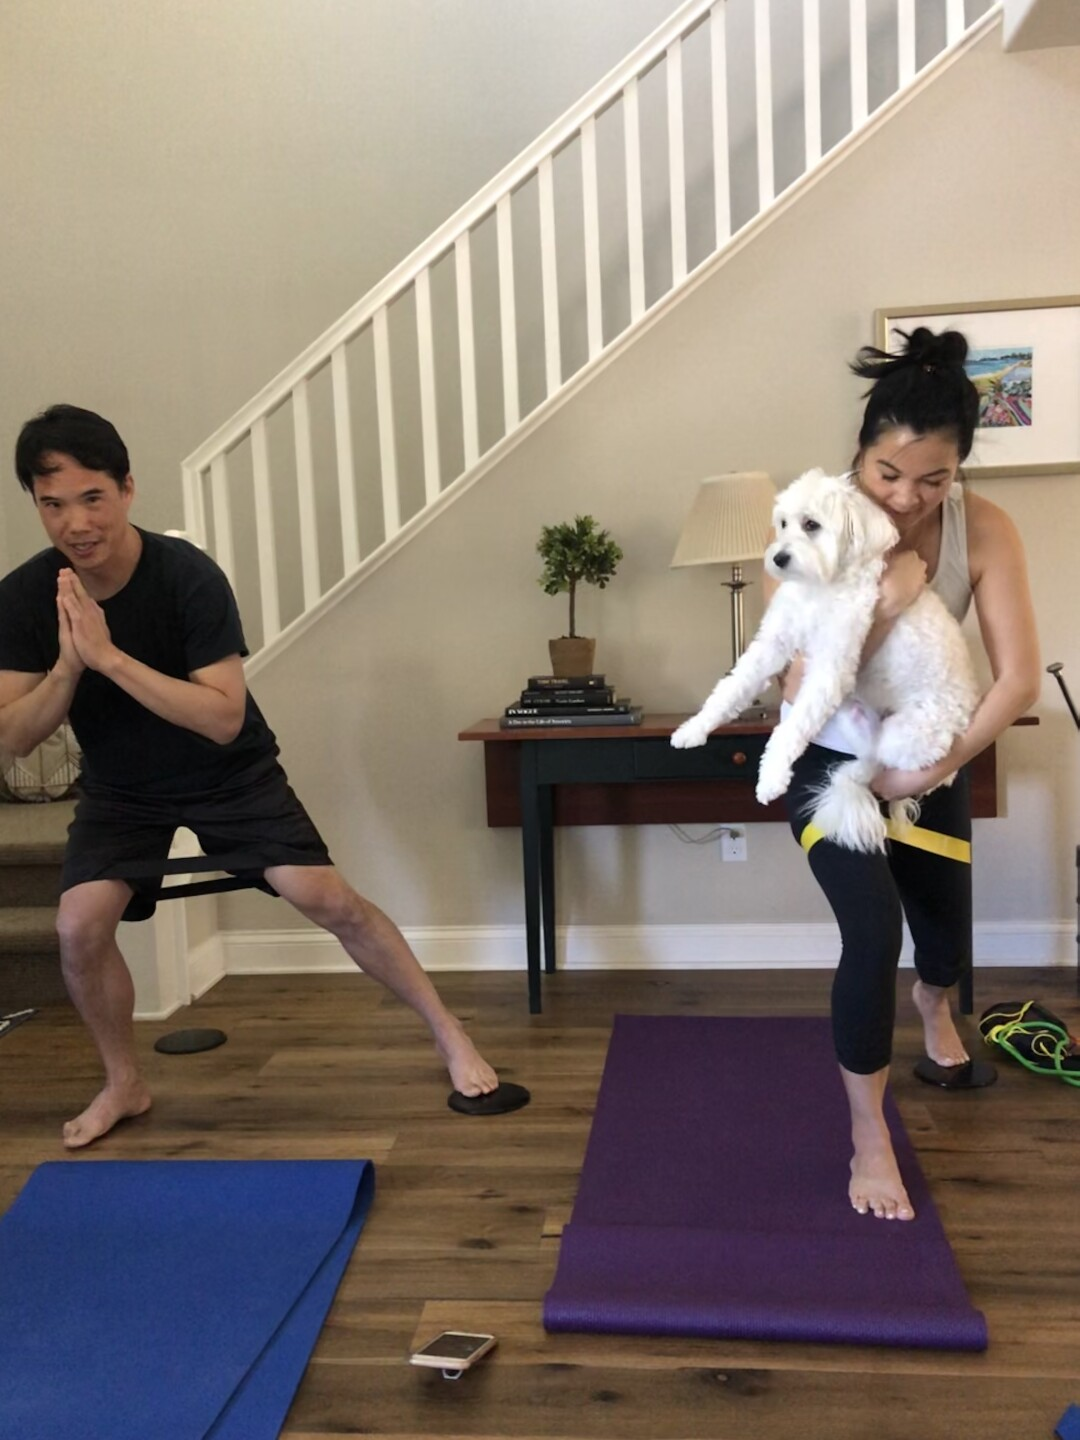 Charles Yu exercising with his wife, Michelle, and their dog.